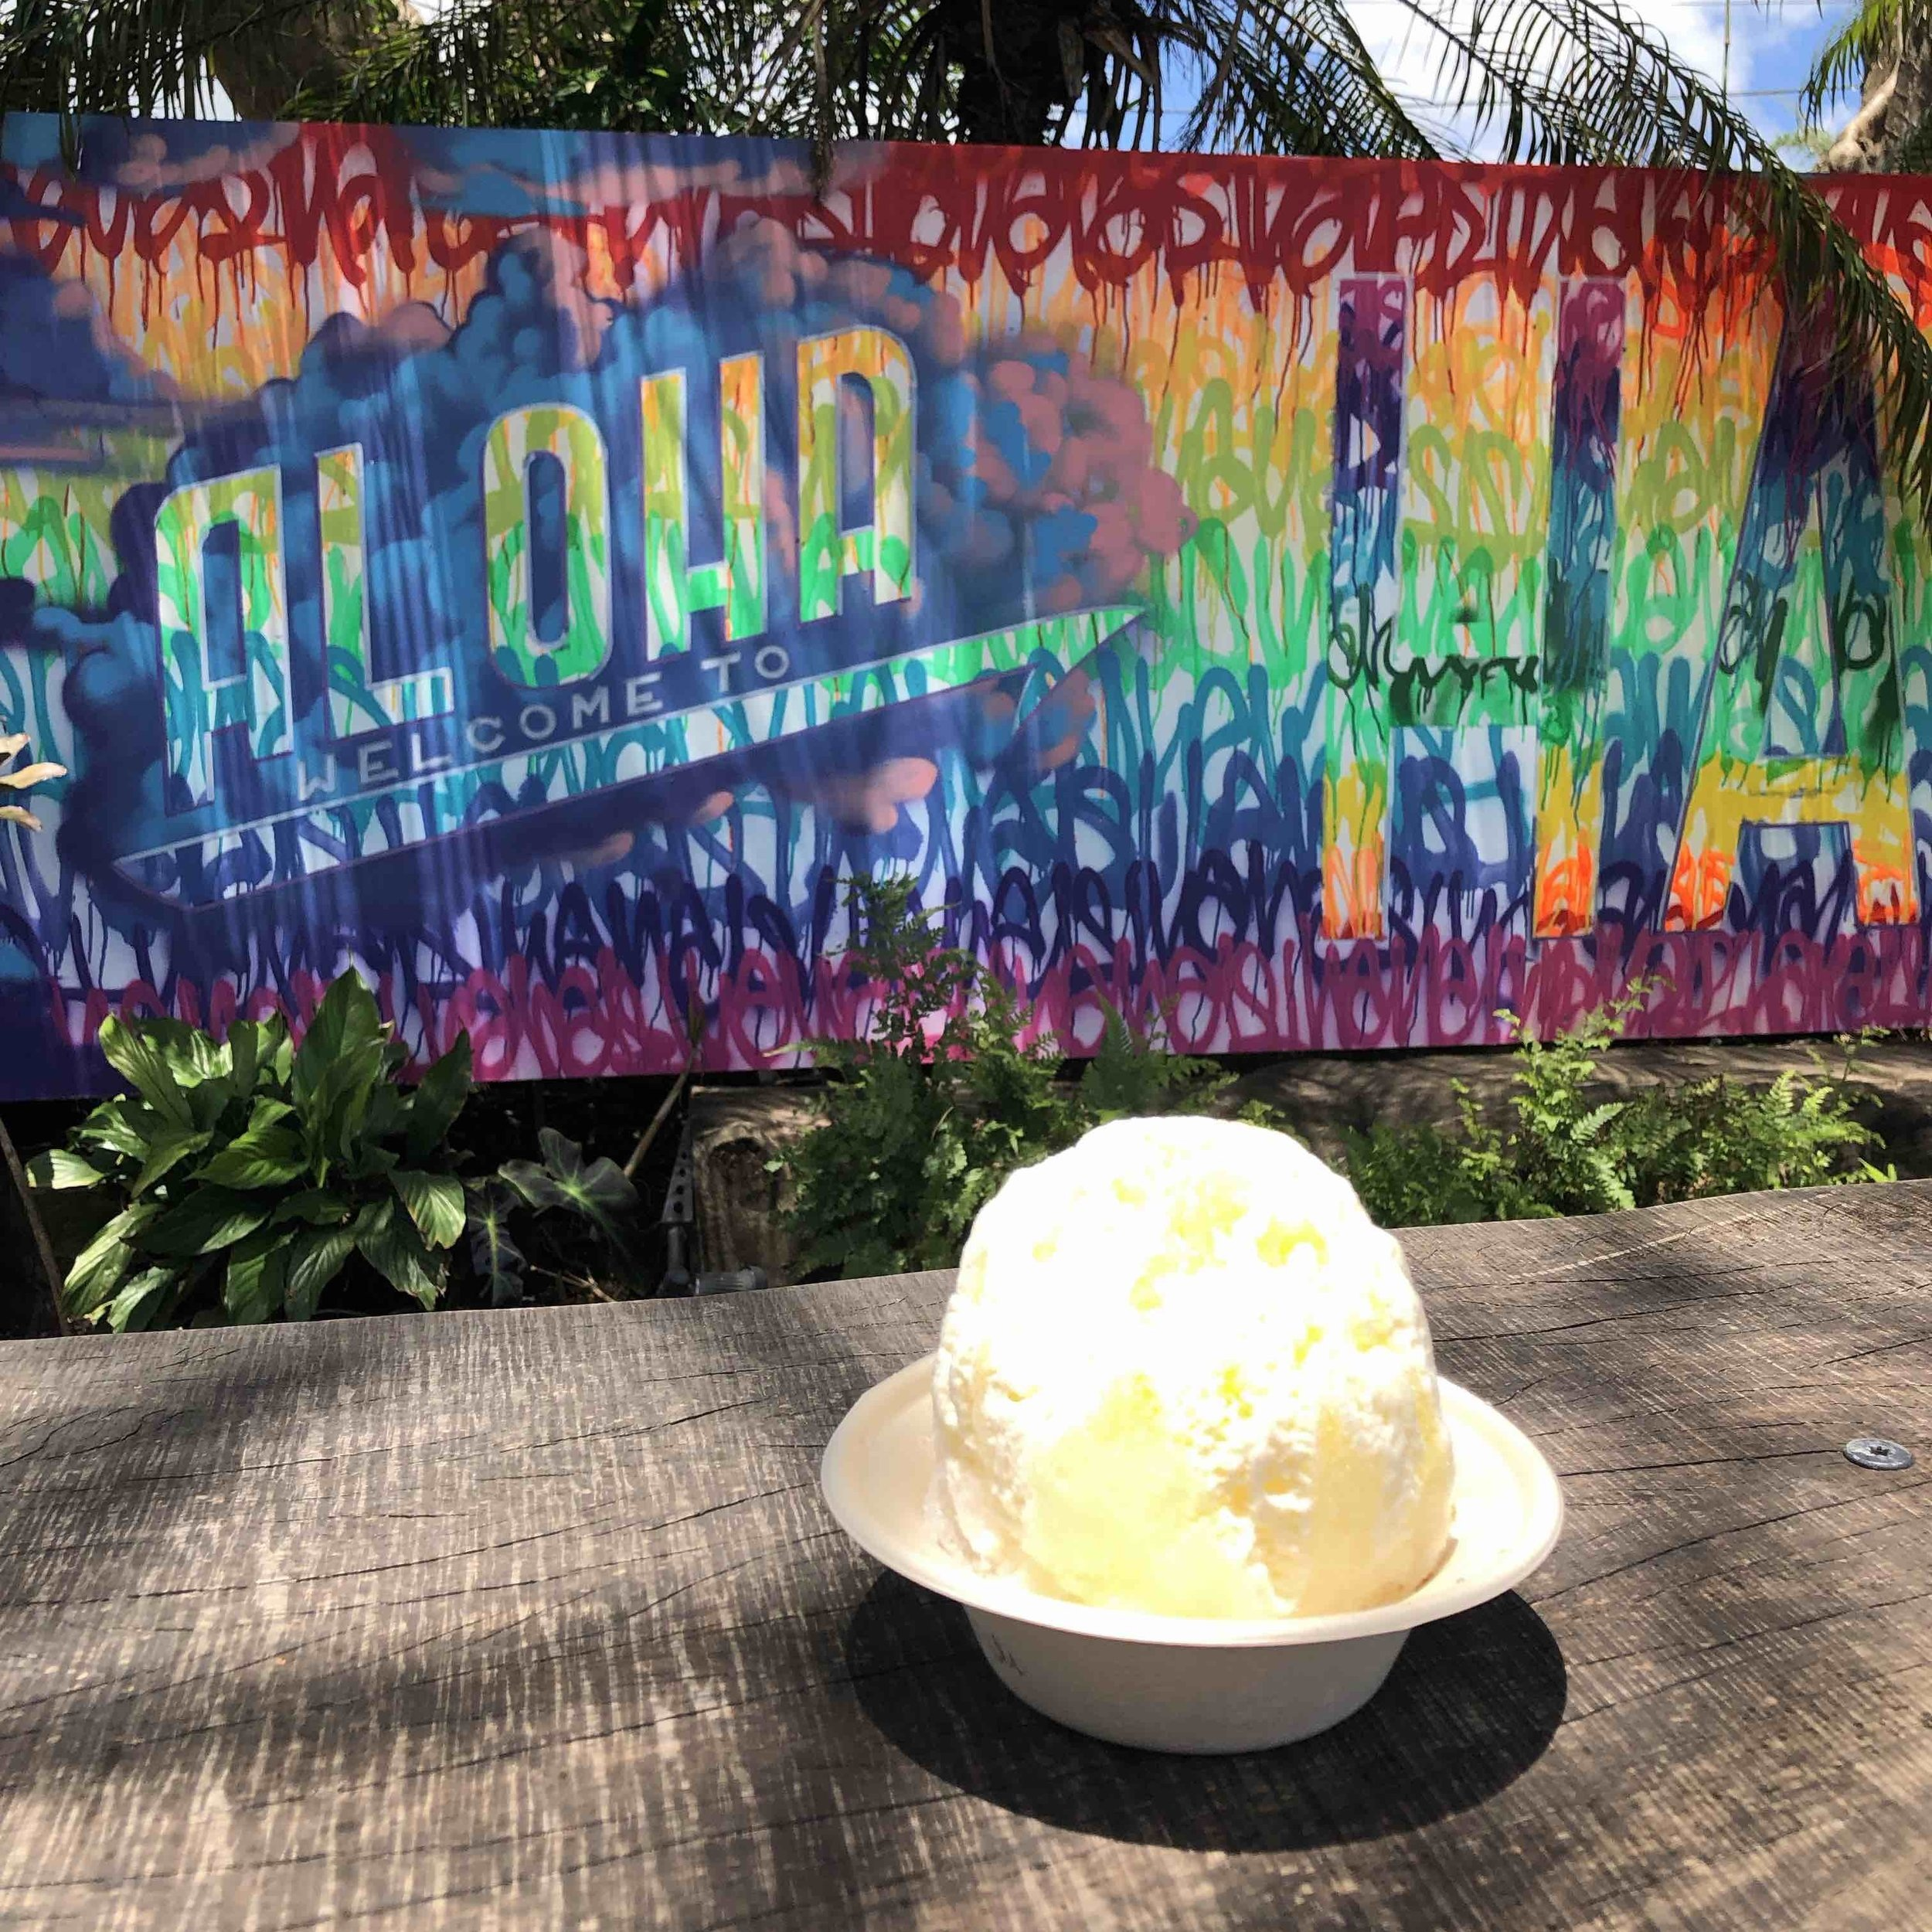 Shave ice at Wishing Well